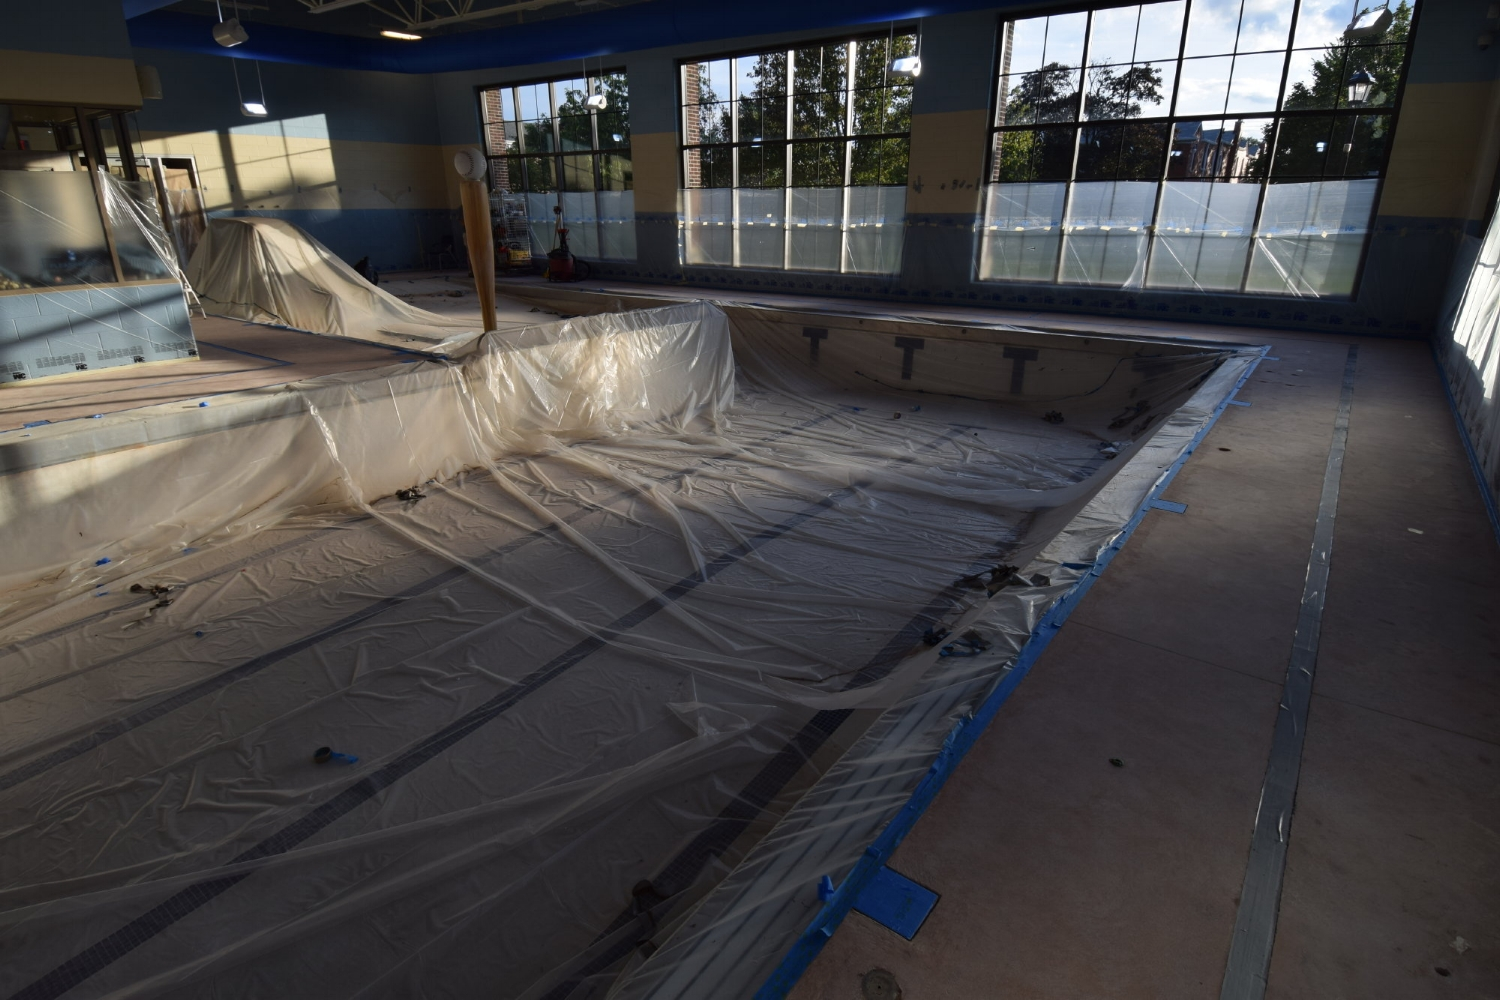 Commercial Indoor Concrete Pool Deck Masked Off With Plastic To Protect Adjacent Surfaces During Spray-Texture Decorative Cement Overlay